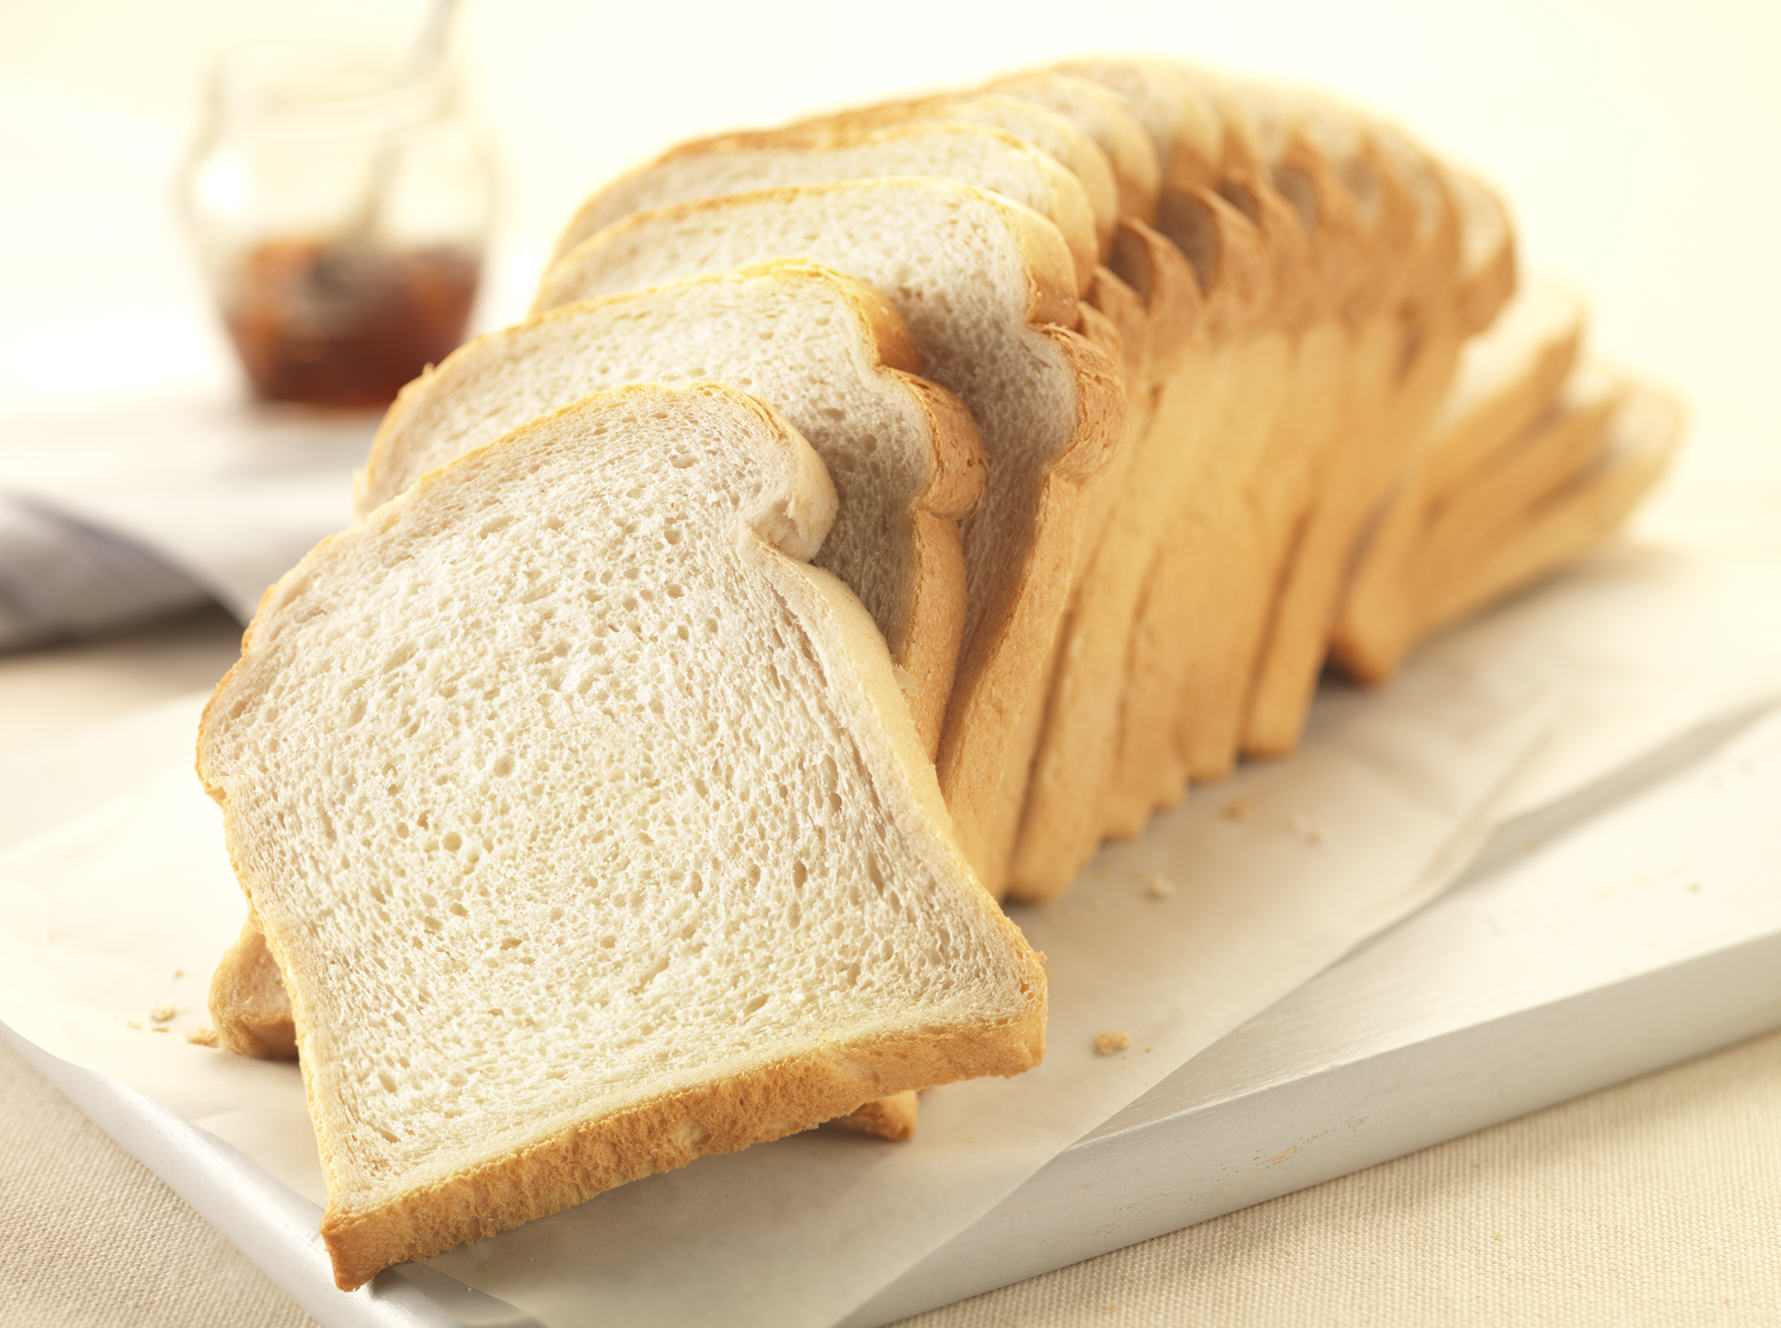 whitebread1 Could This Be The End For Sliced White Bread In The UK?